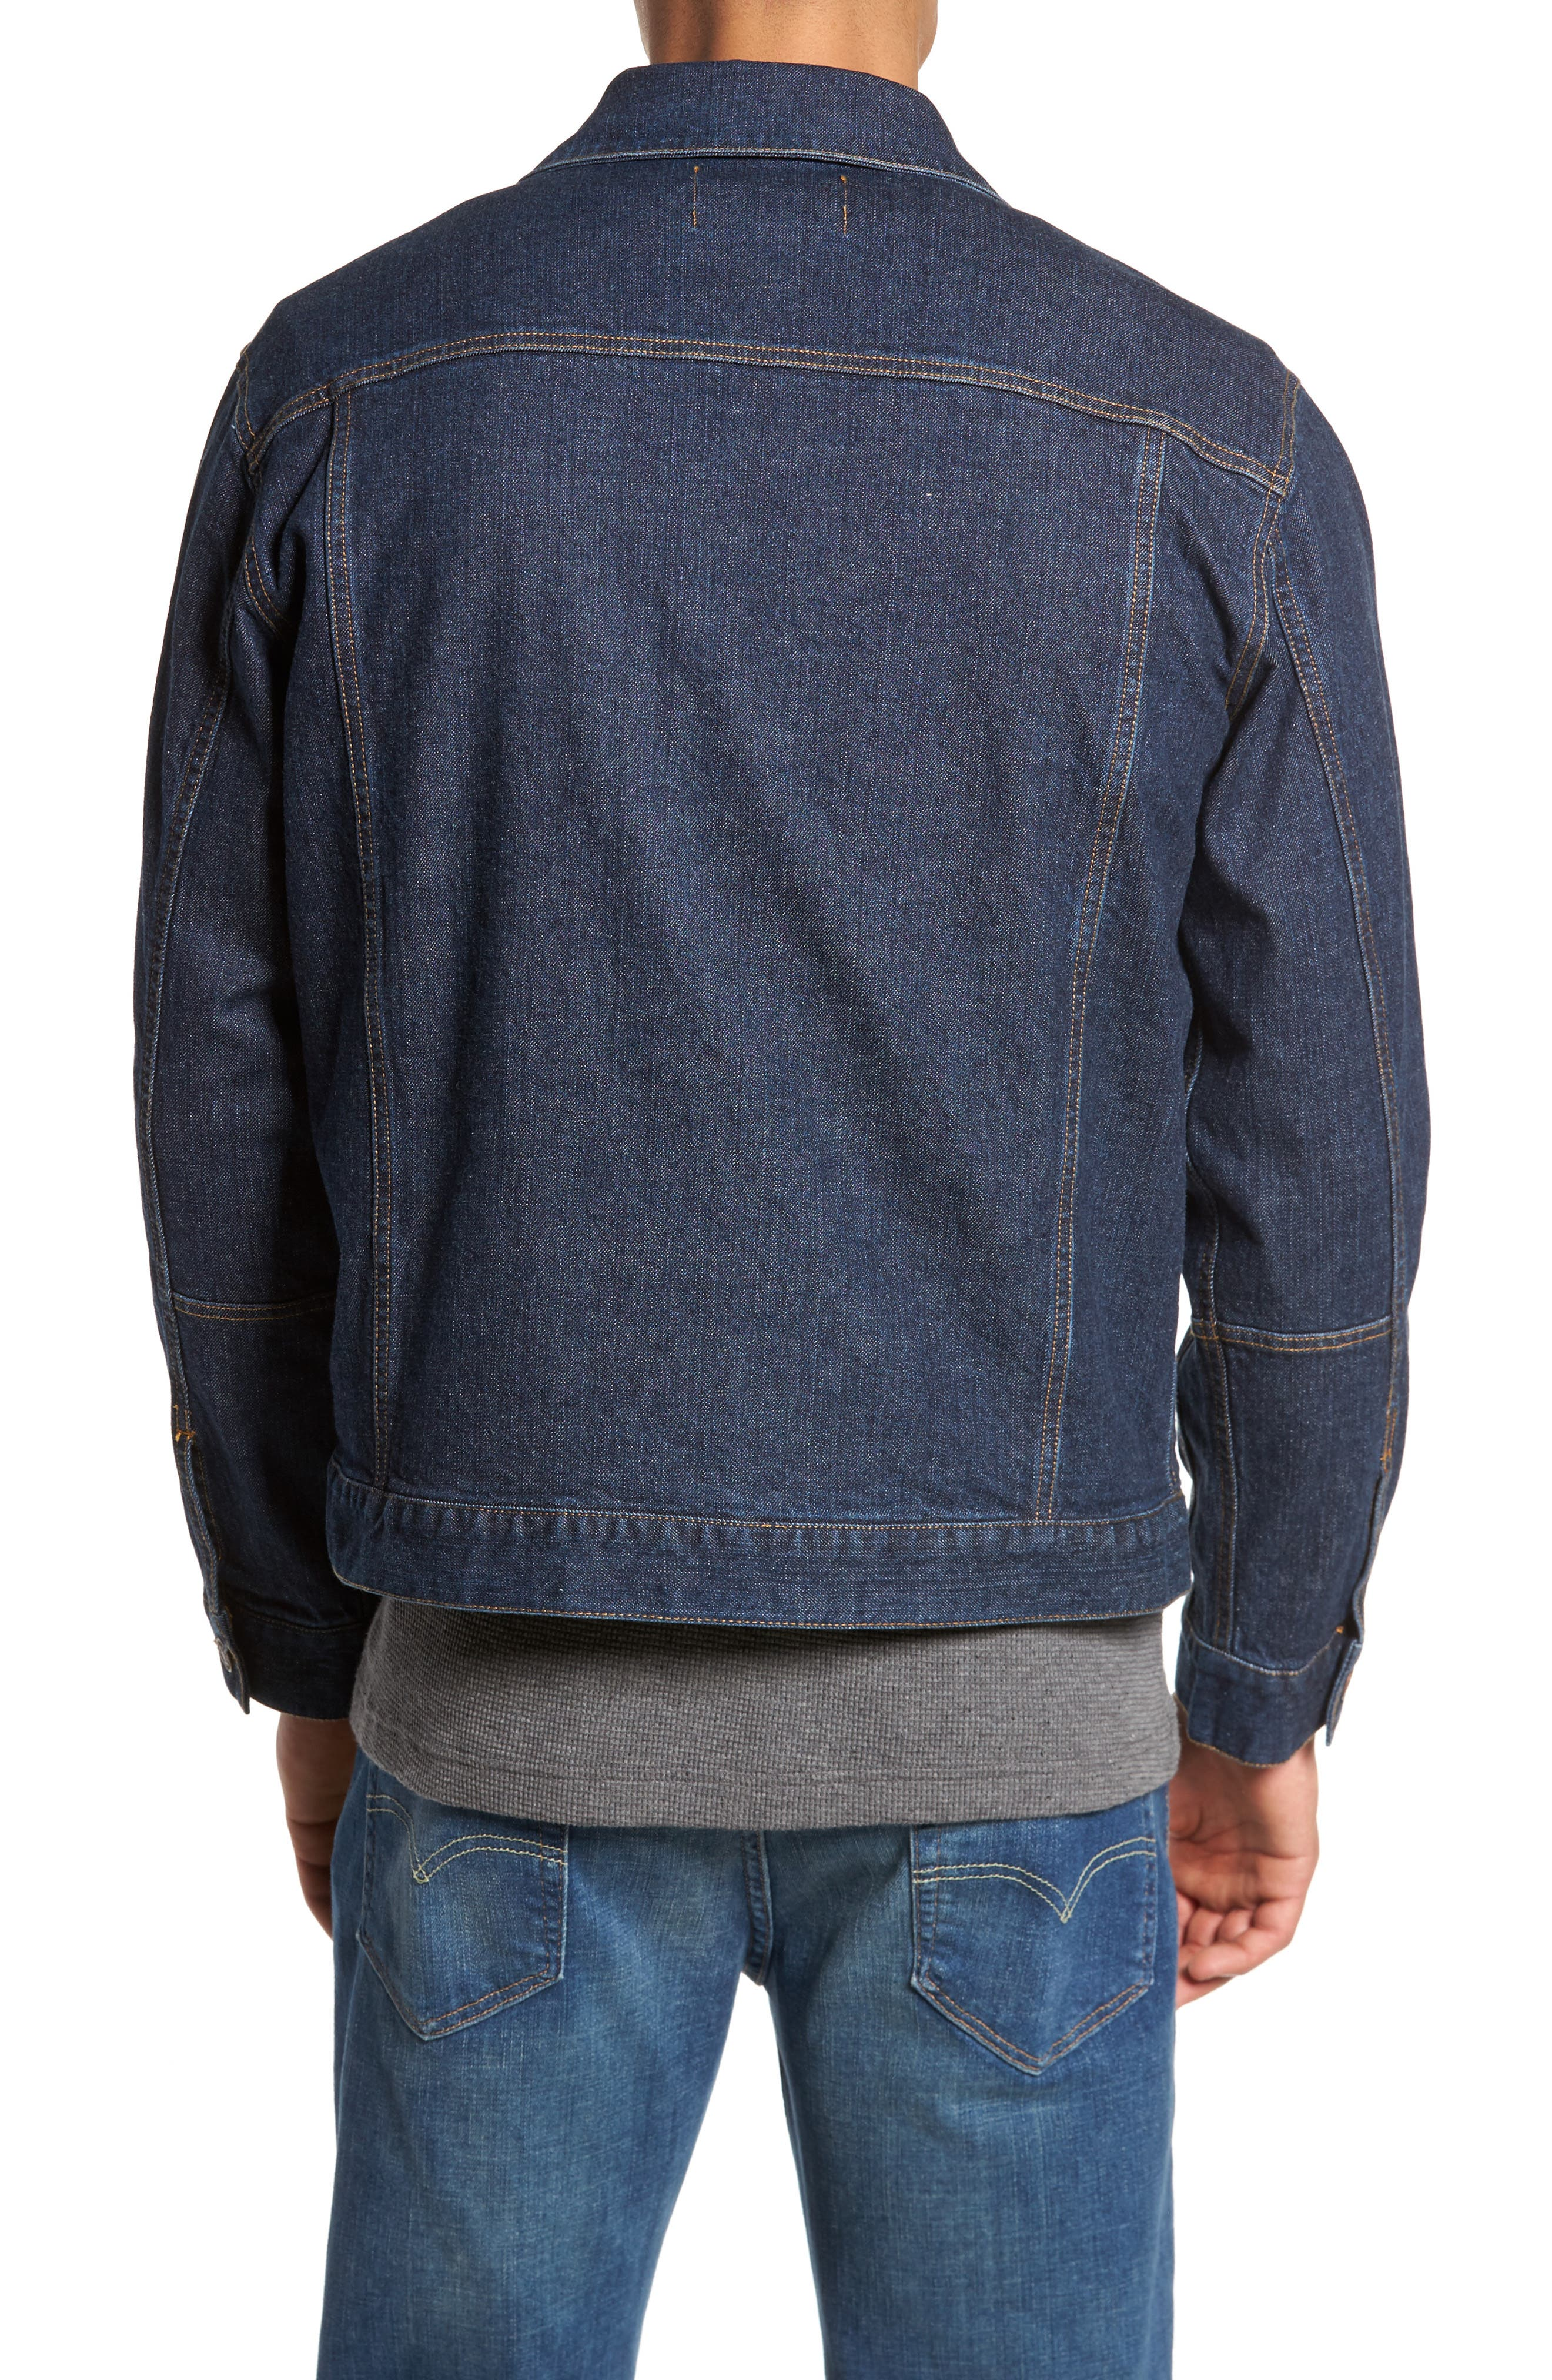 Denim Jacket with Removable Wool Vest,                             Alternate thumbnail 2, color,                             415